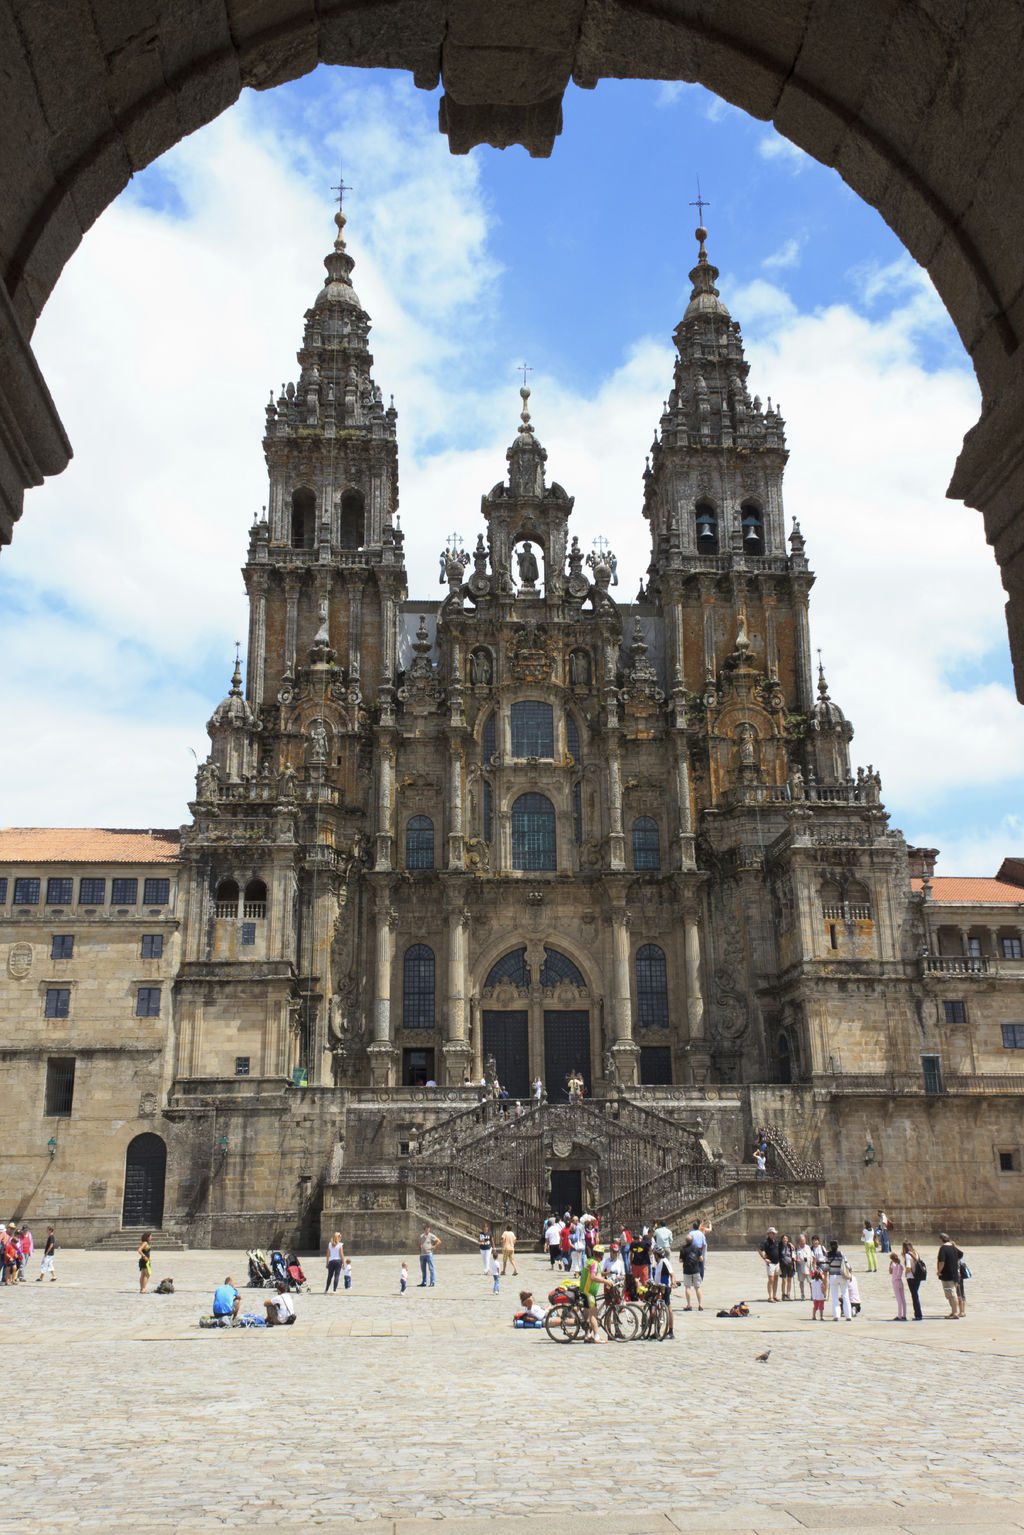 santiago de compostela bbw dating site Dating offers shop garden shop bookshop box the site is an extension of the route of santiago de compostela, a serial site inscribed on the world heritage list in.